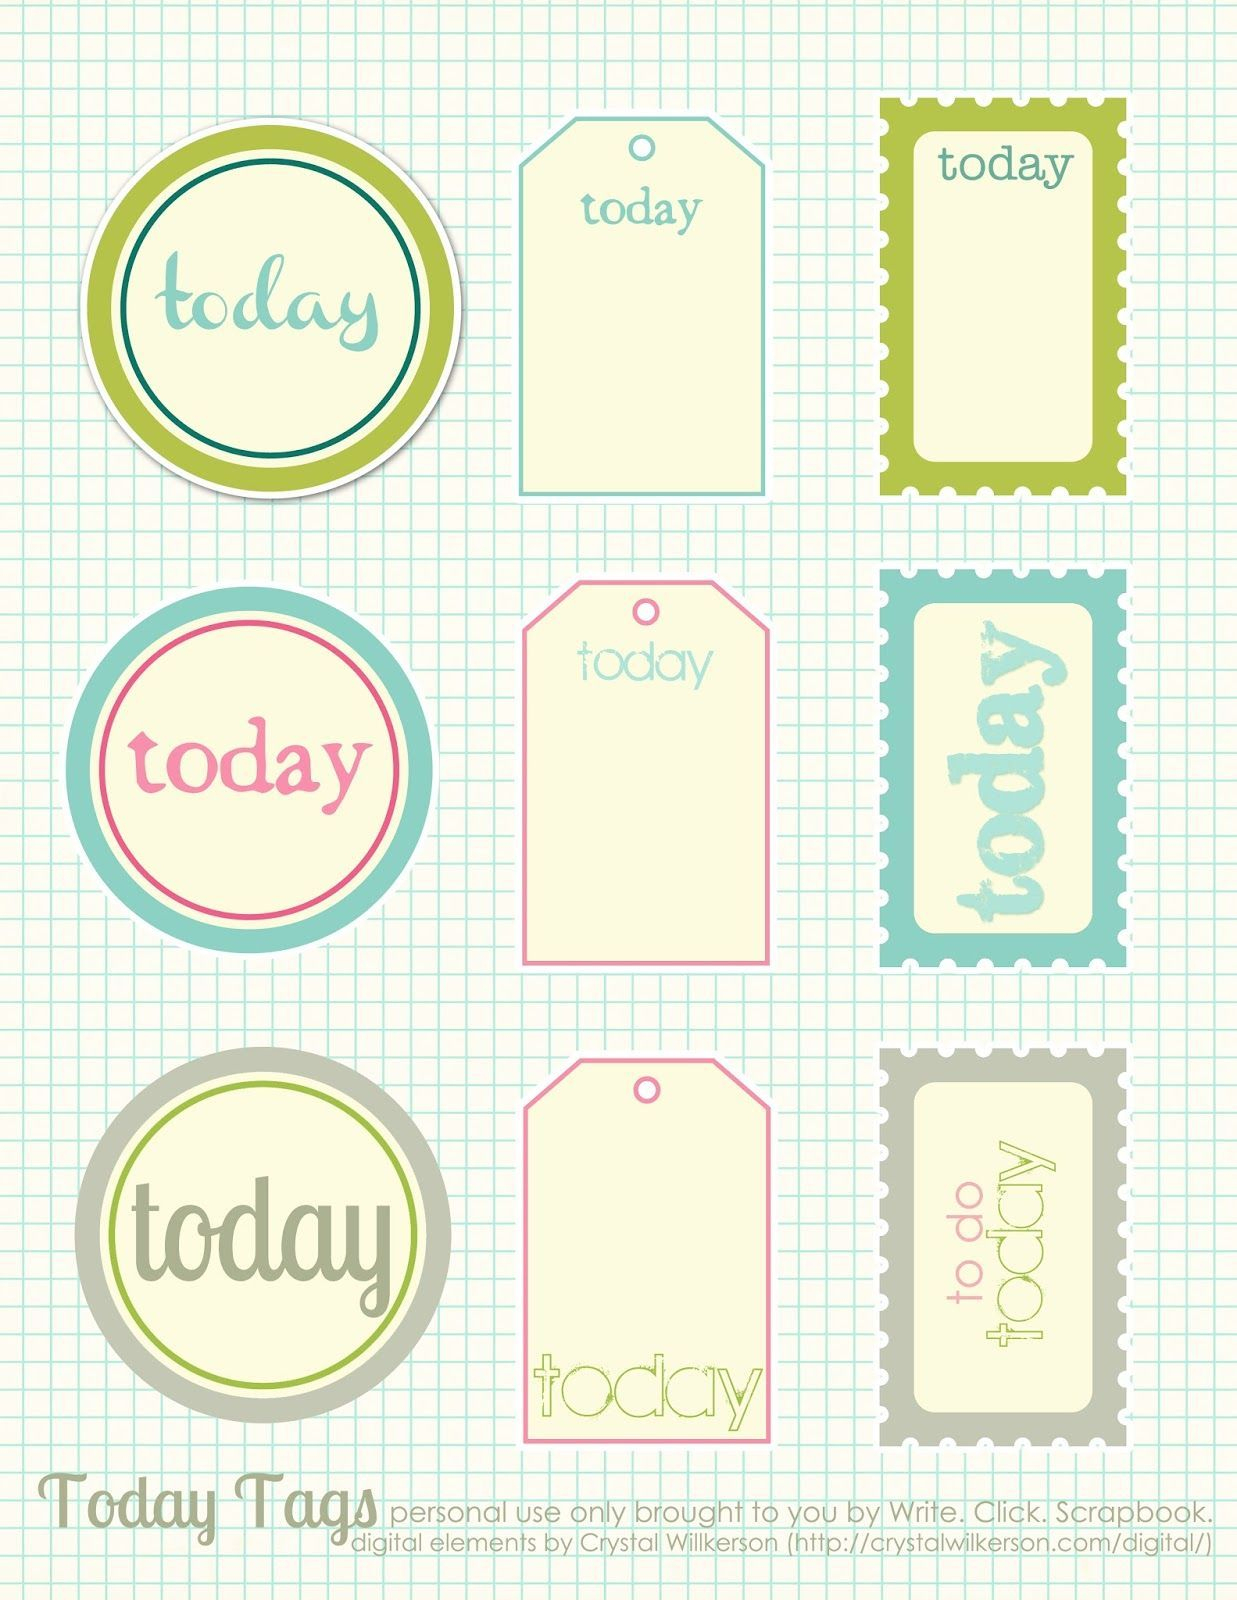 25 Awesome Photo Of Scrapbook Printables Free | Scrapbook Diy Ideas - Free Printable Scrapbook Page Designs